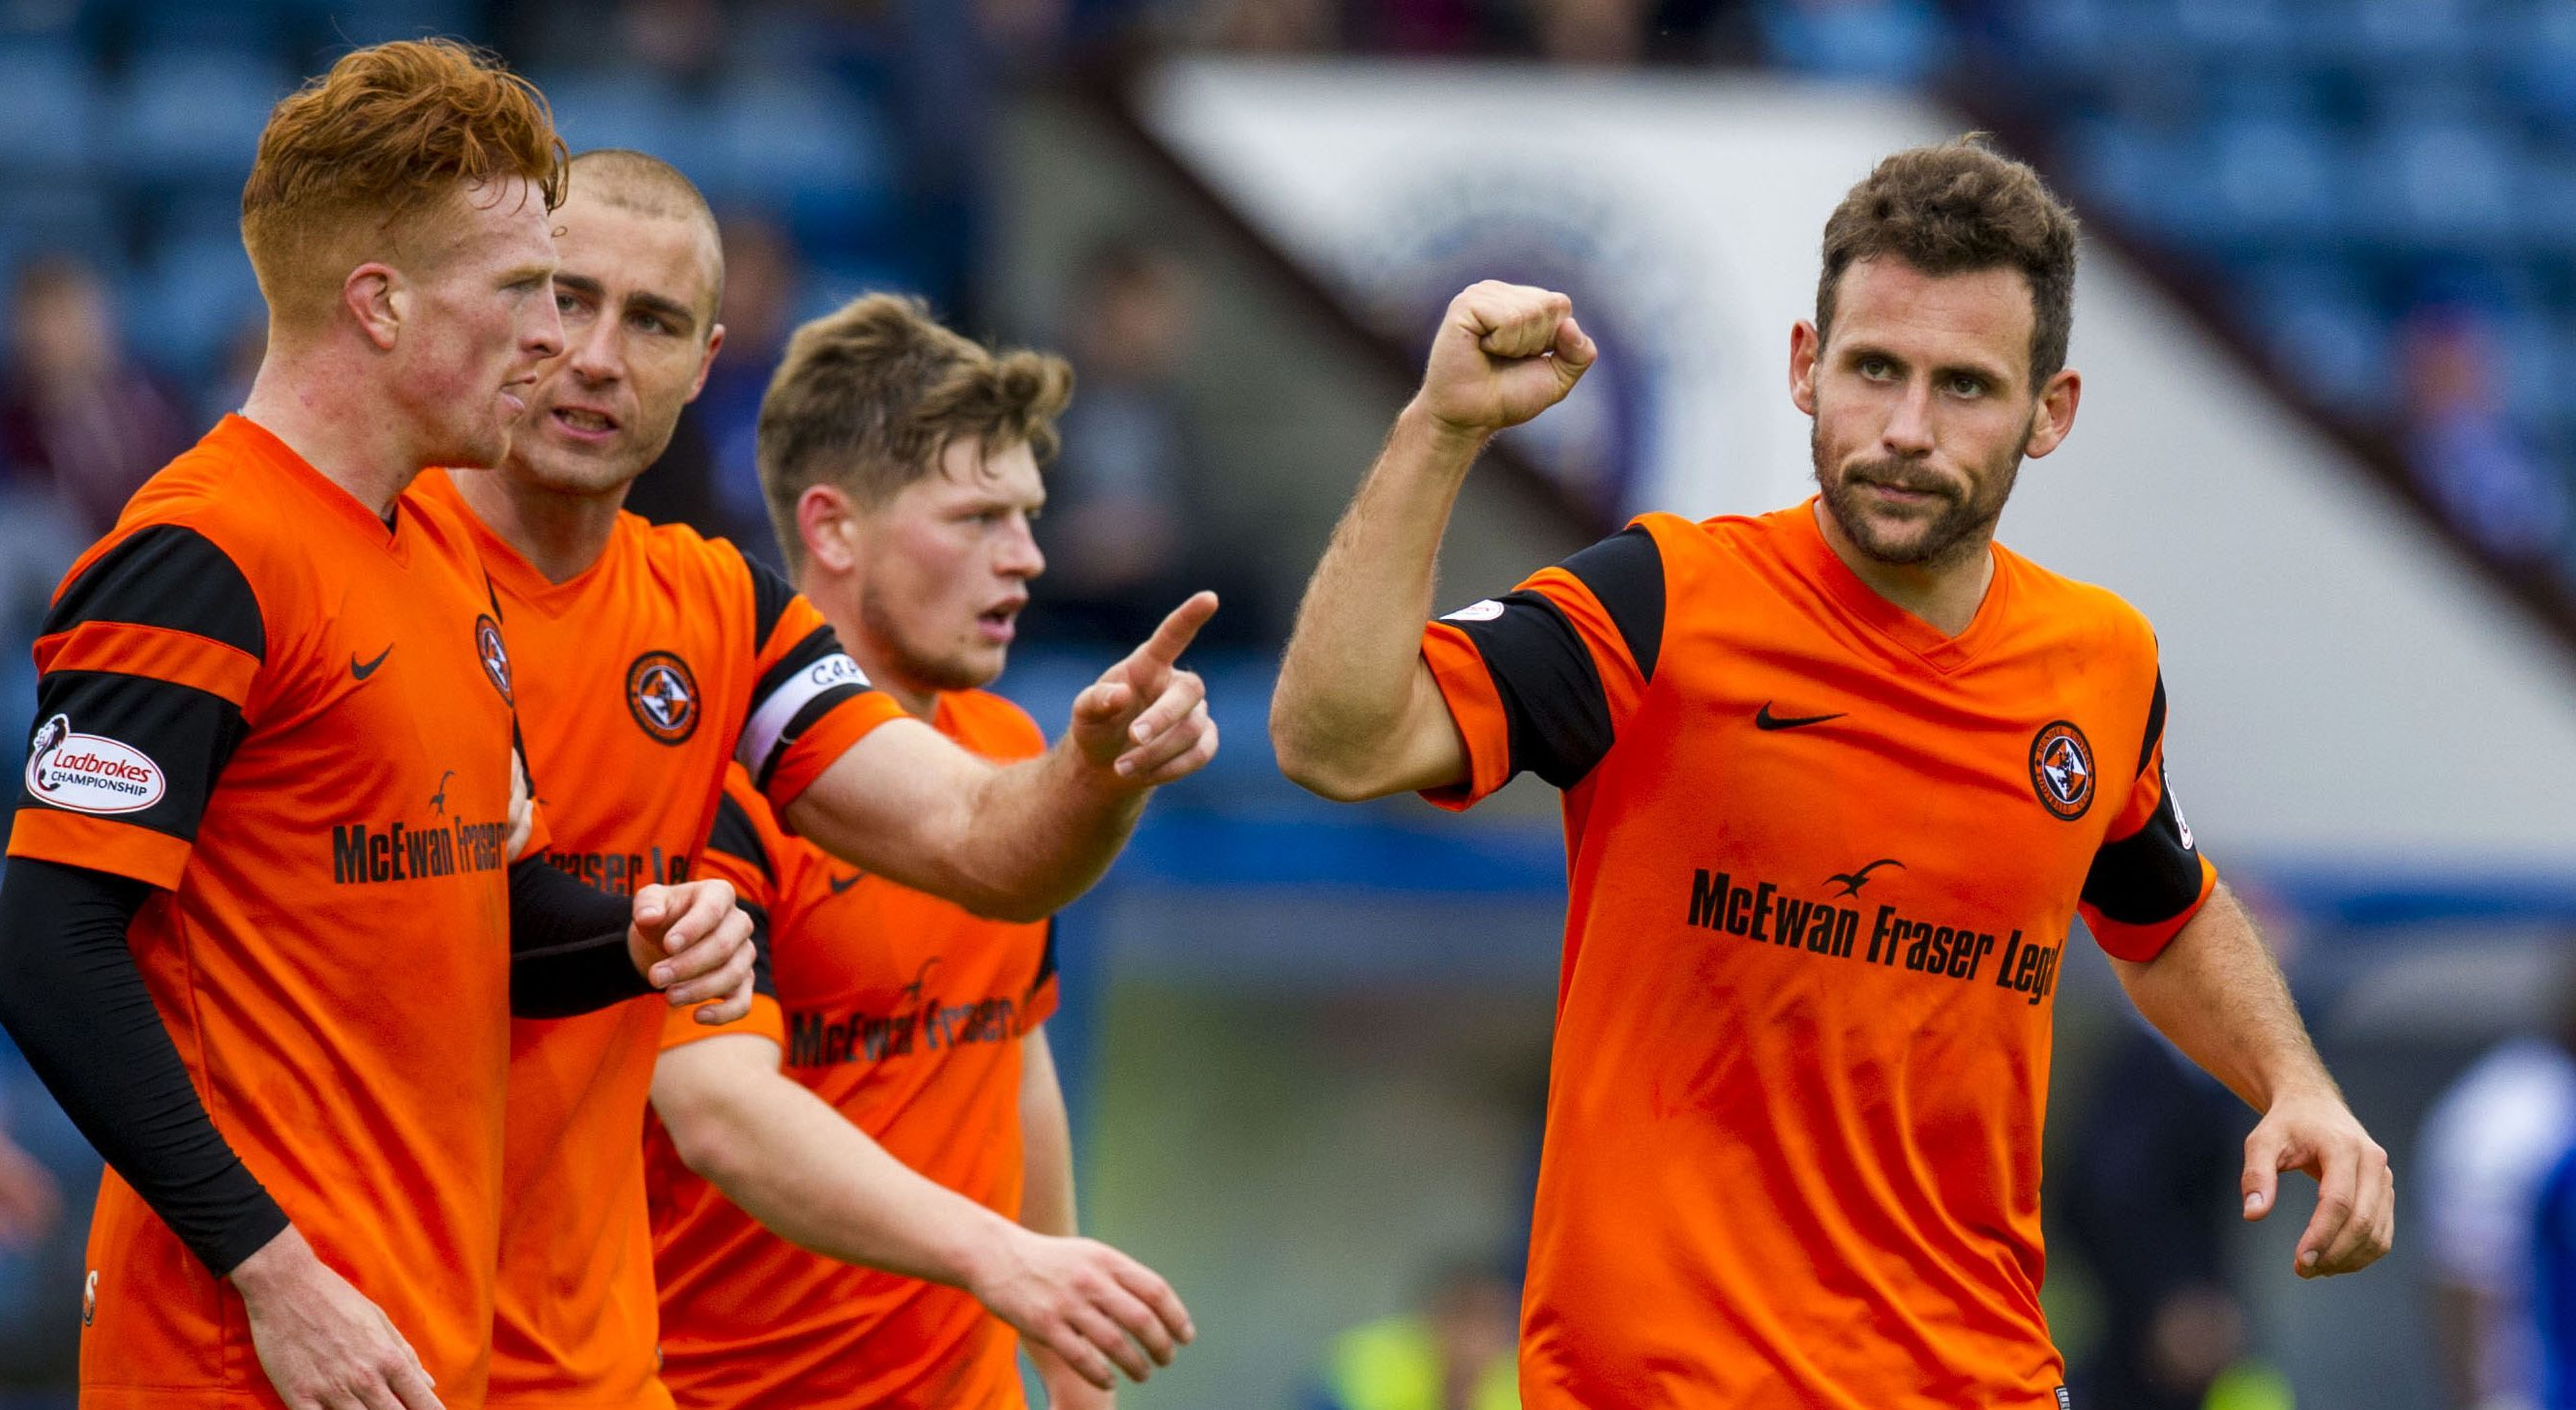 United beat Stranraer on Saturday to progress to quarter-finals.